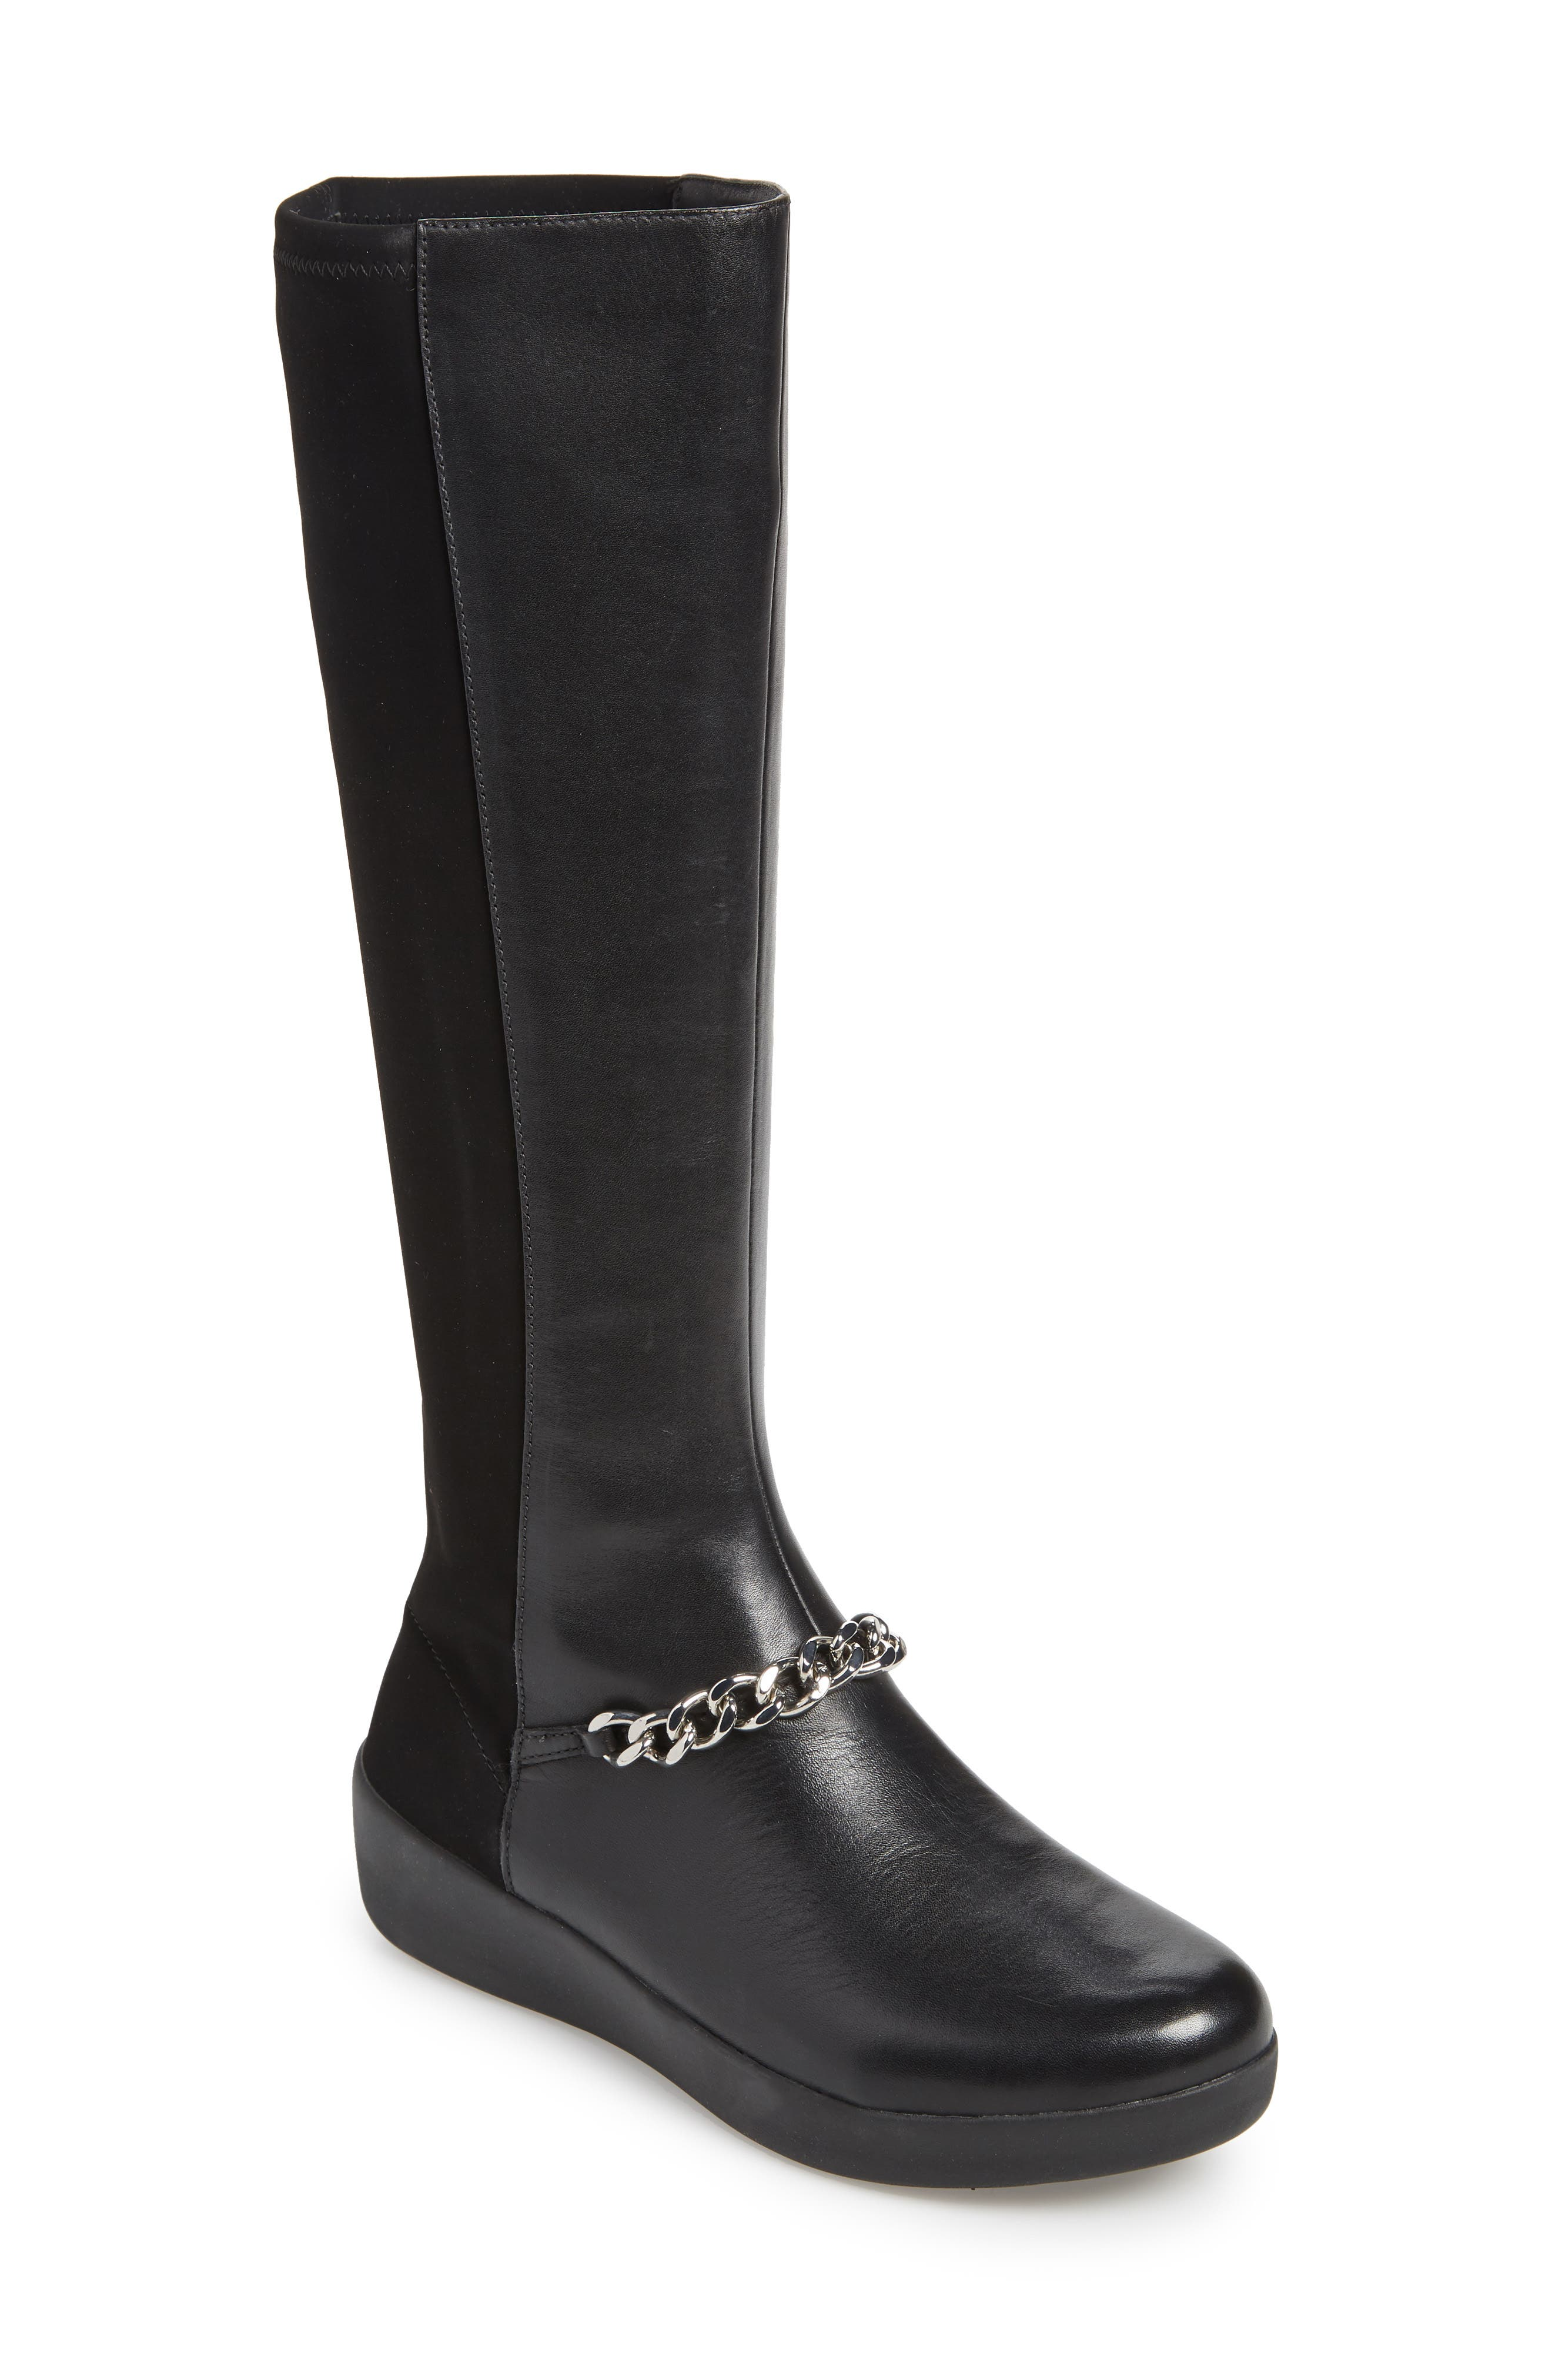 Fitflop Fifi Knee High Boot, Black